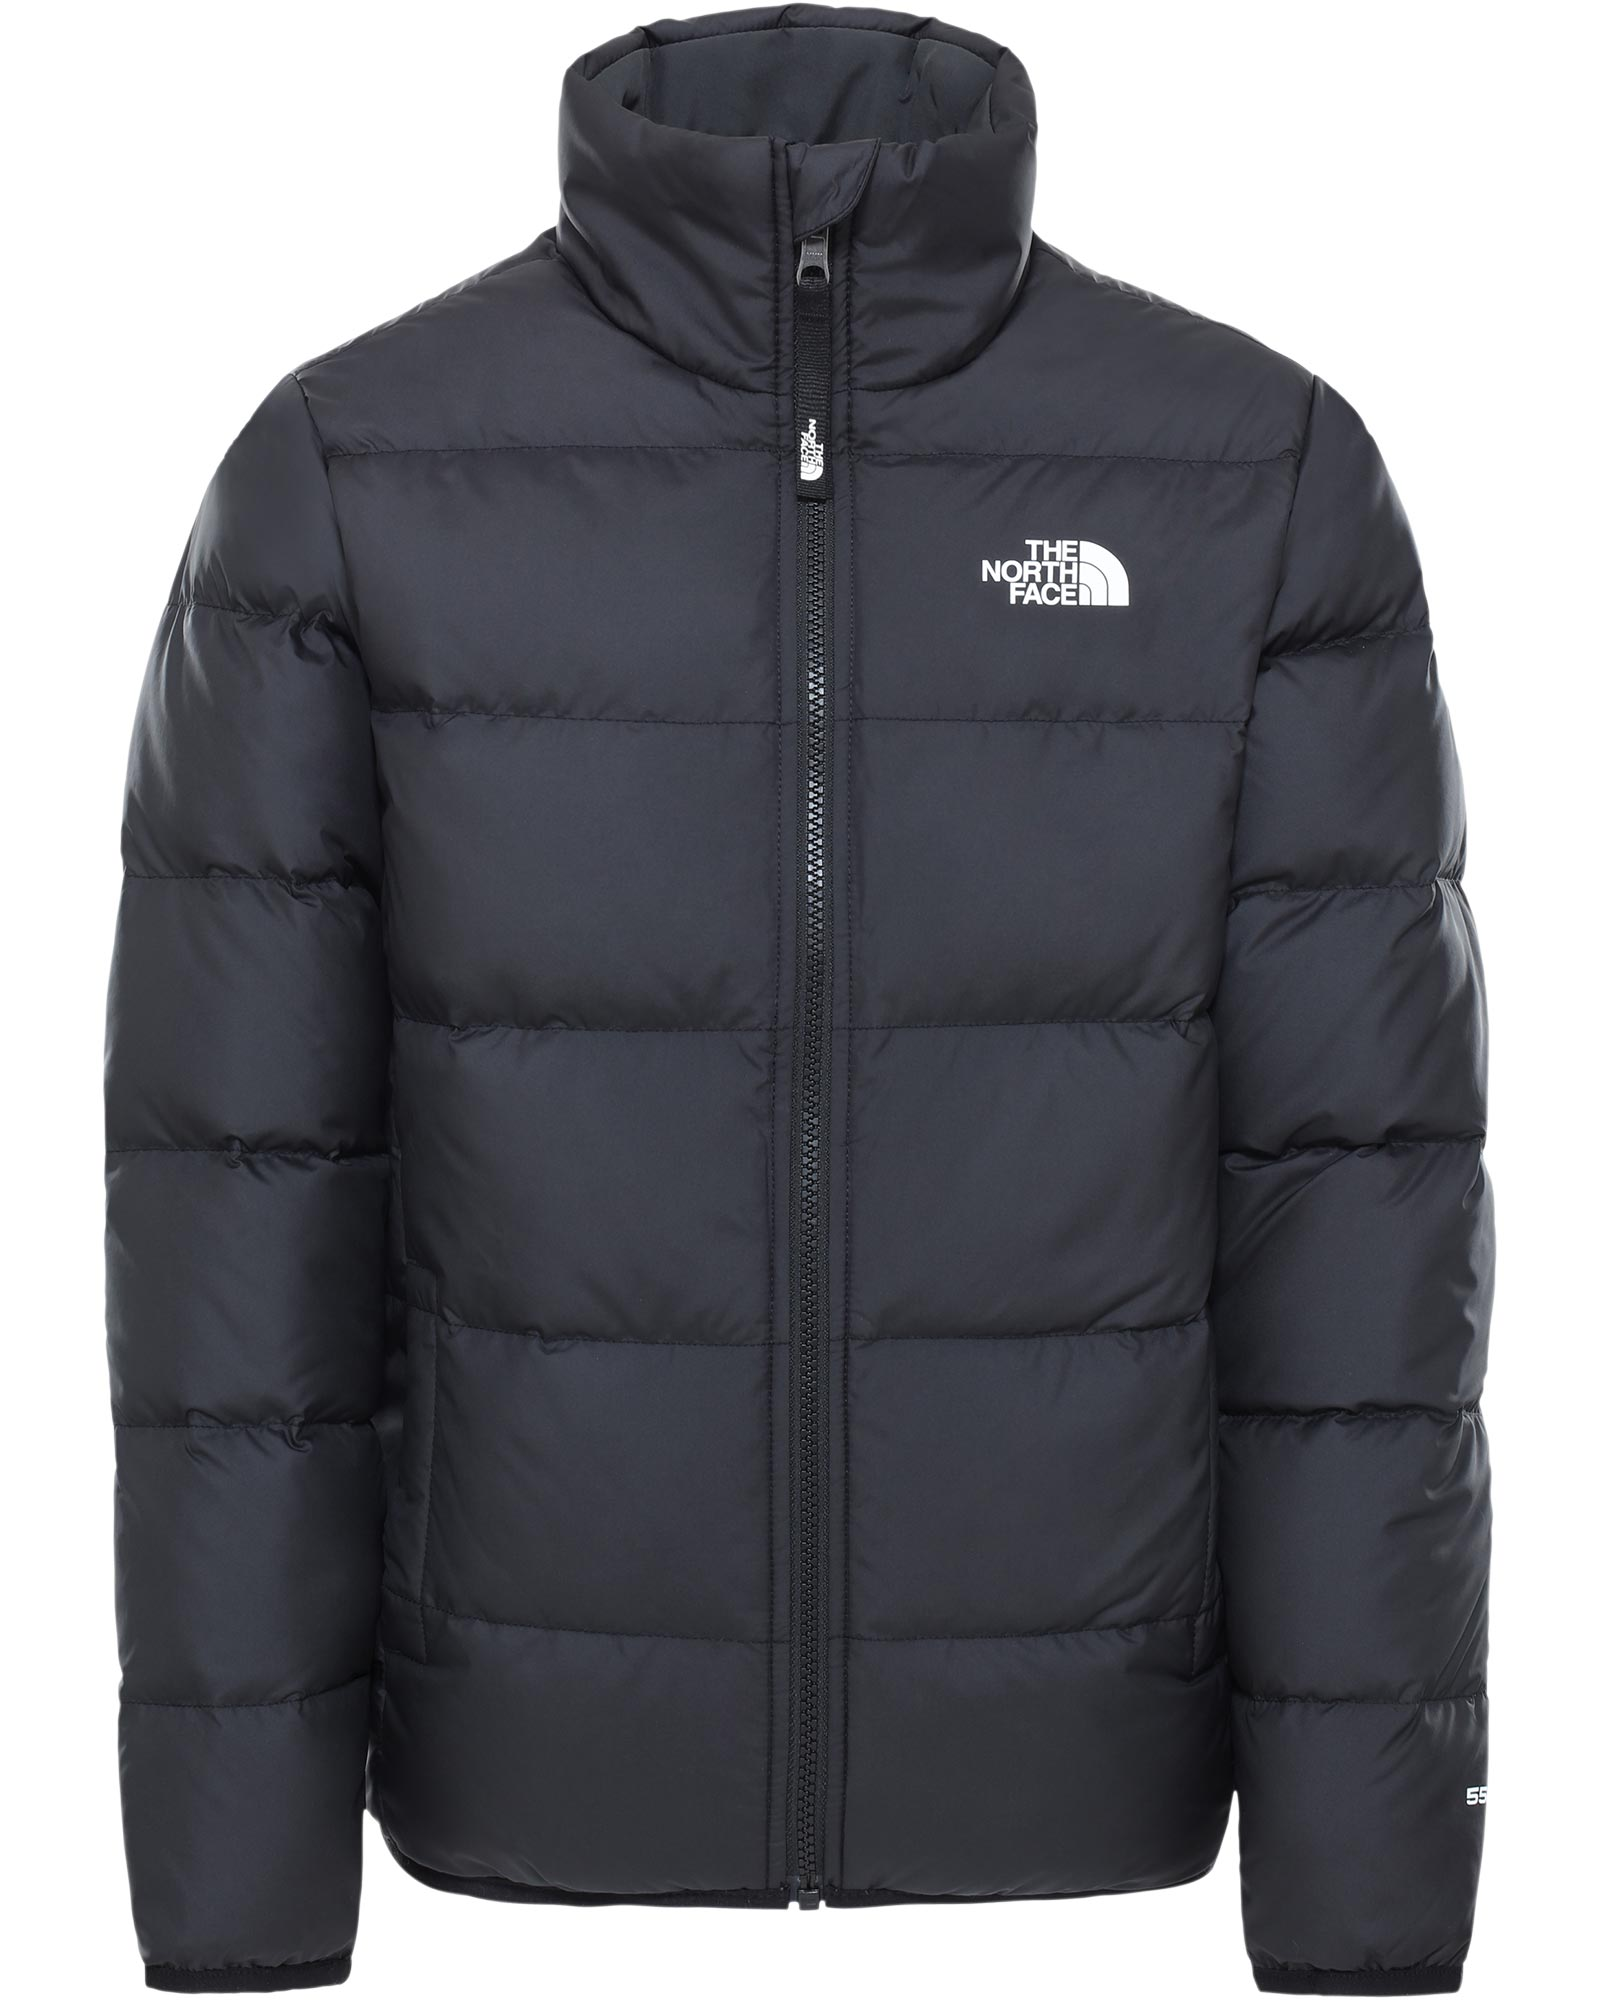 The North Face Boys' Reversible Andes Jacket 0